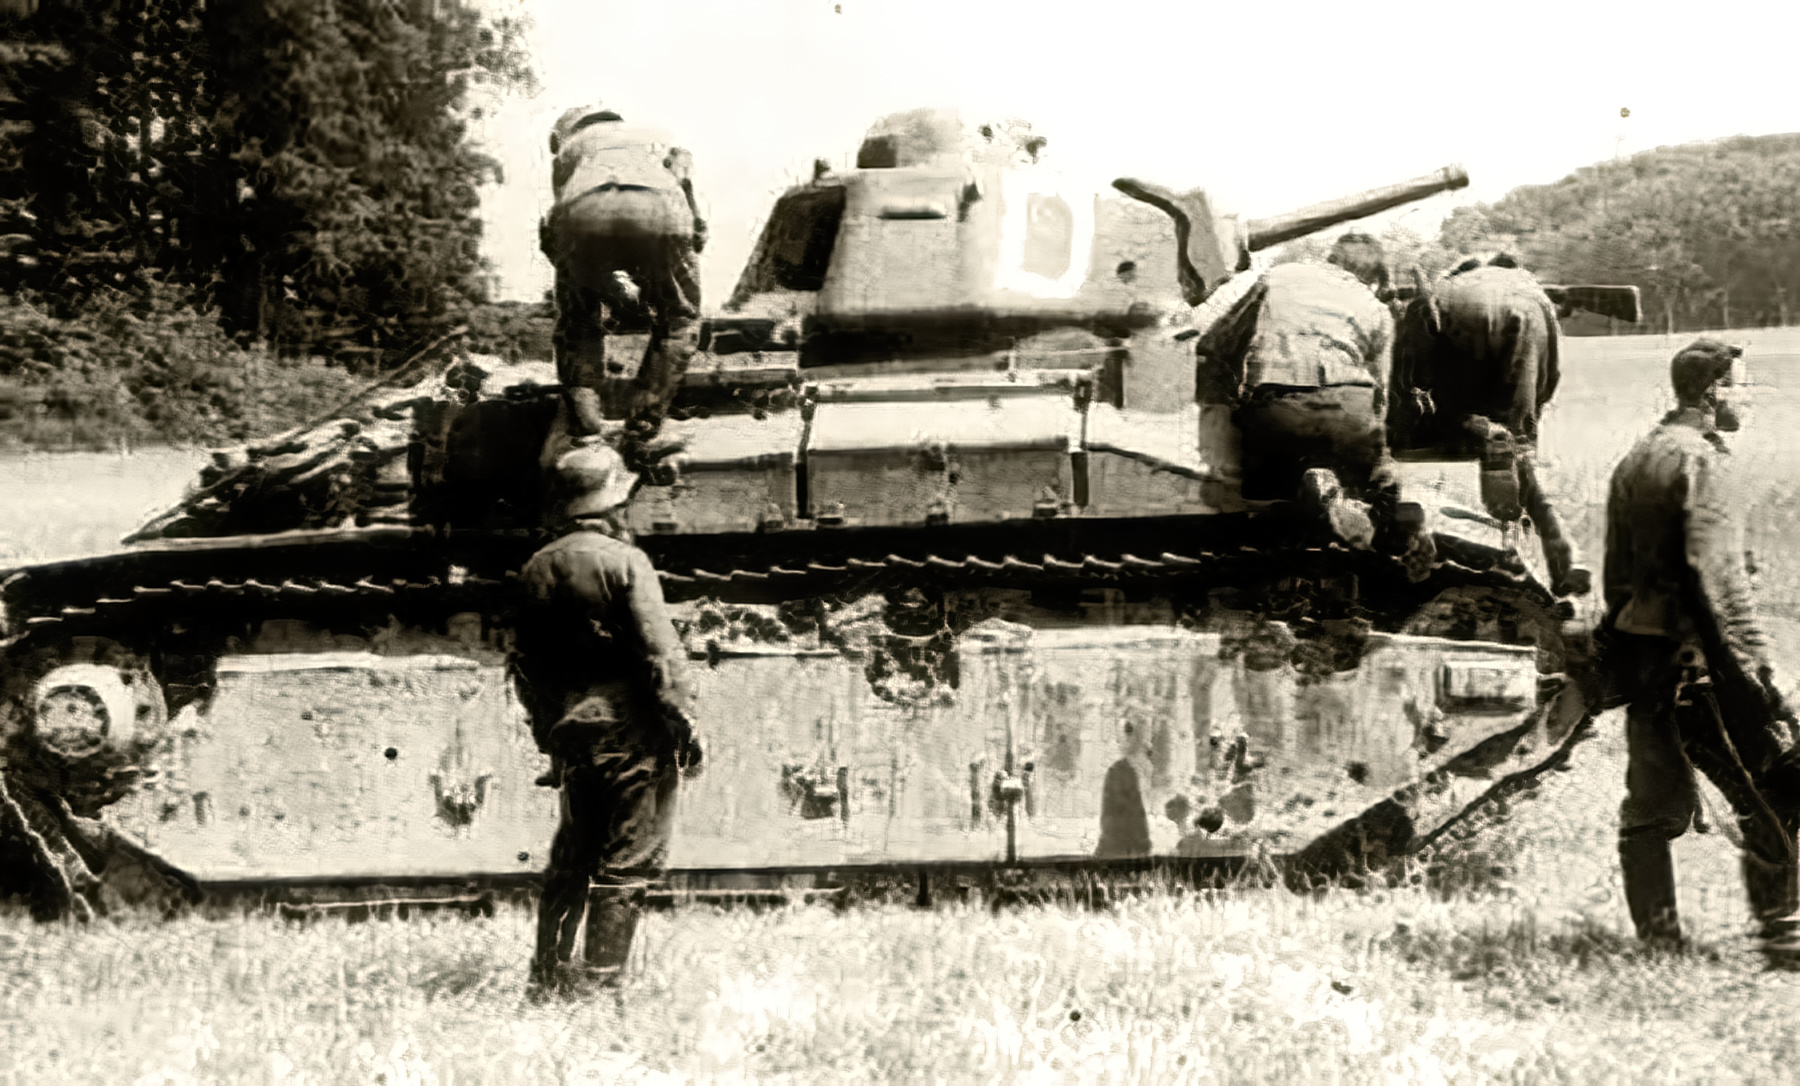 French Army Renault D2 tank White D captured battle of France 1940 web 01